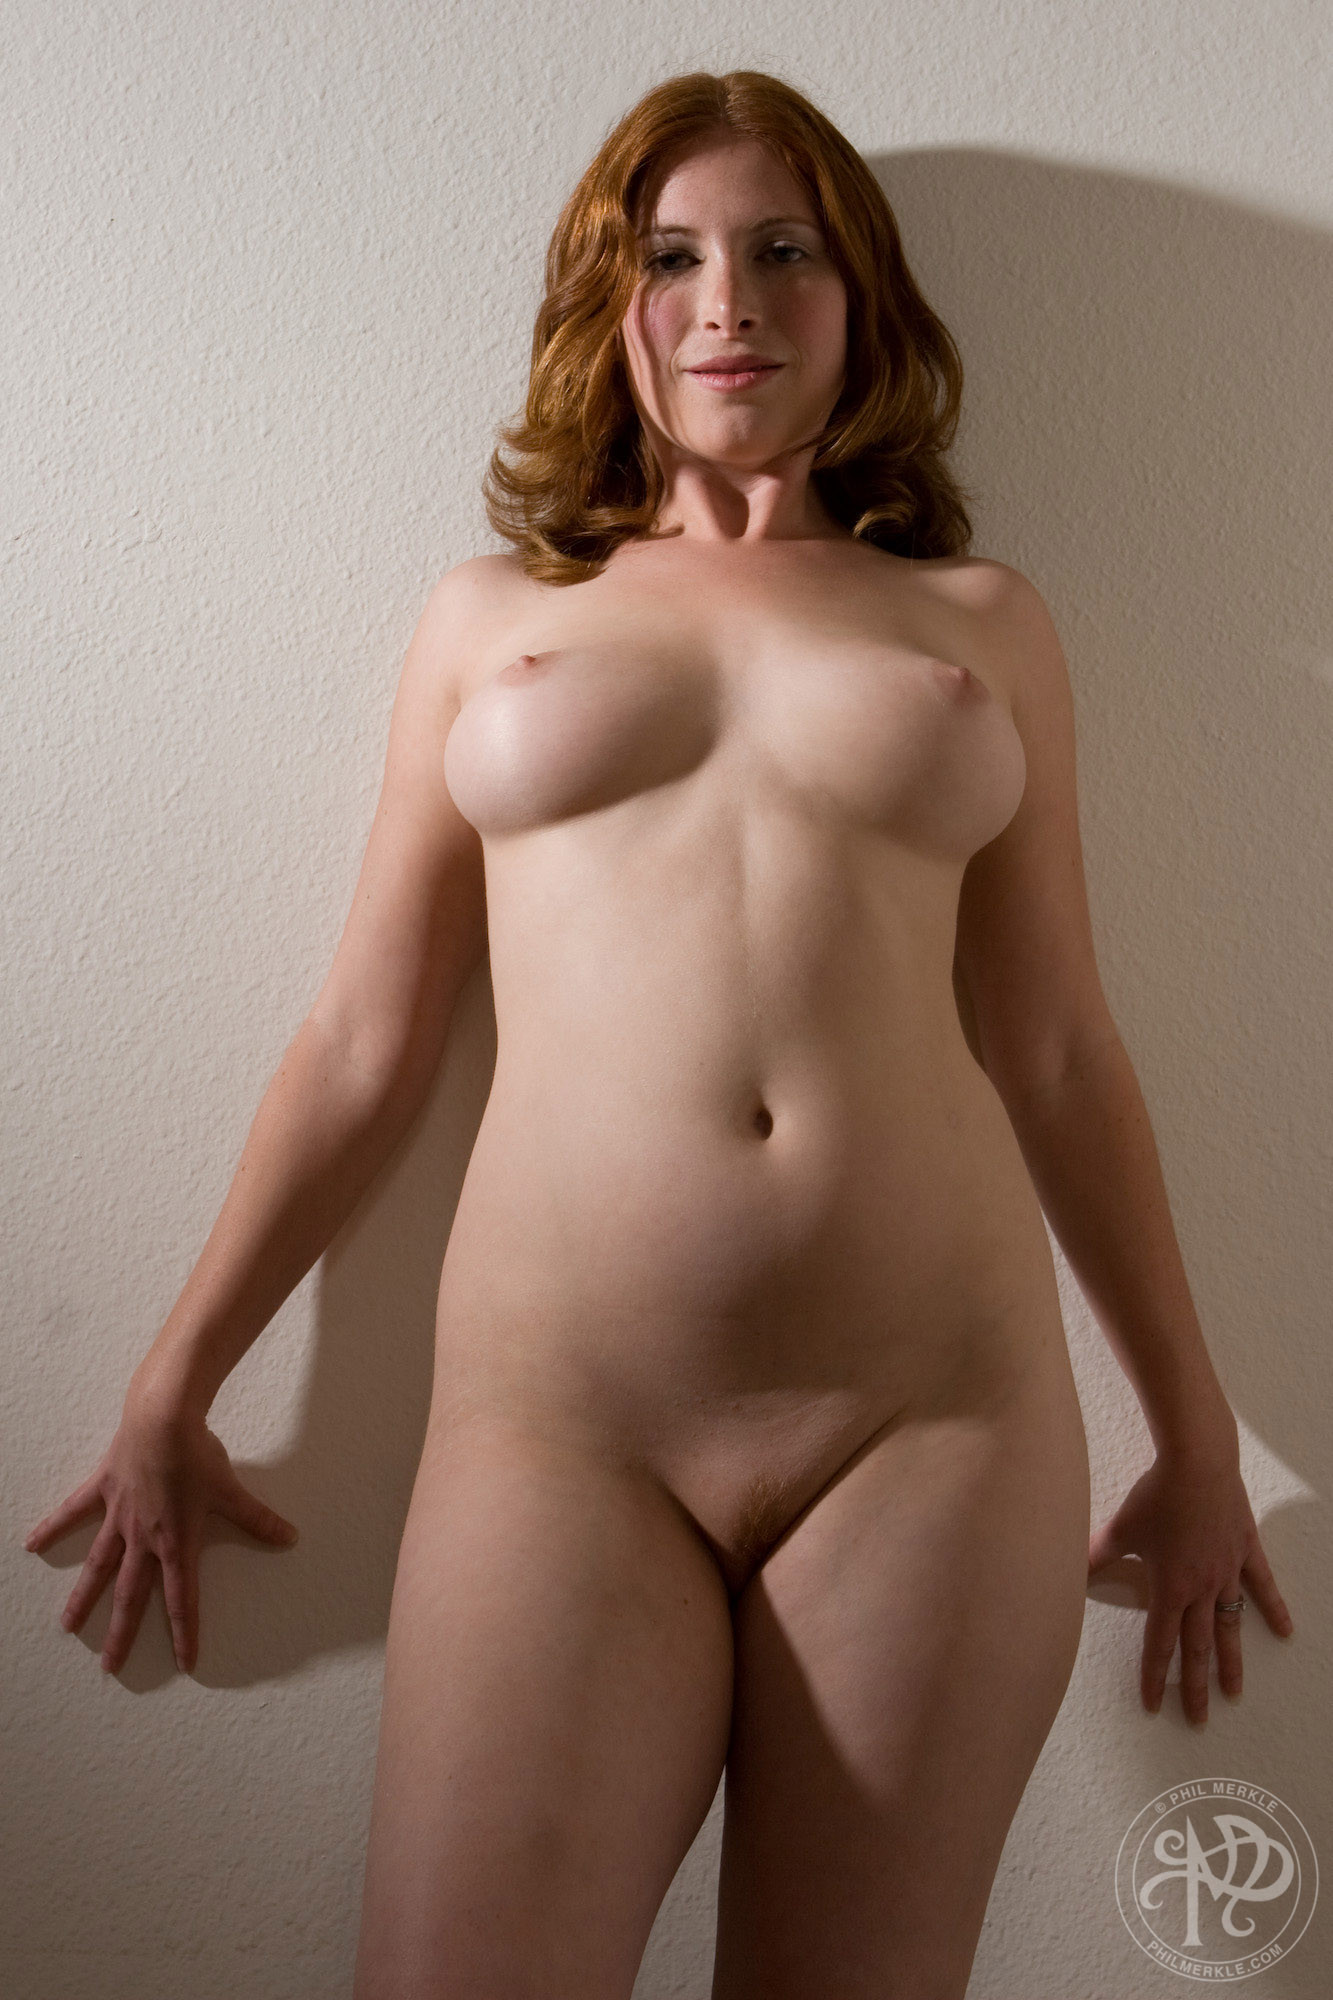 Blaze naked mod adult gallery